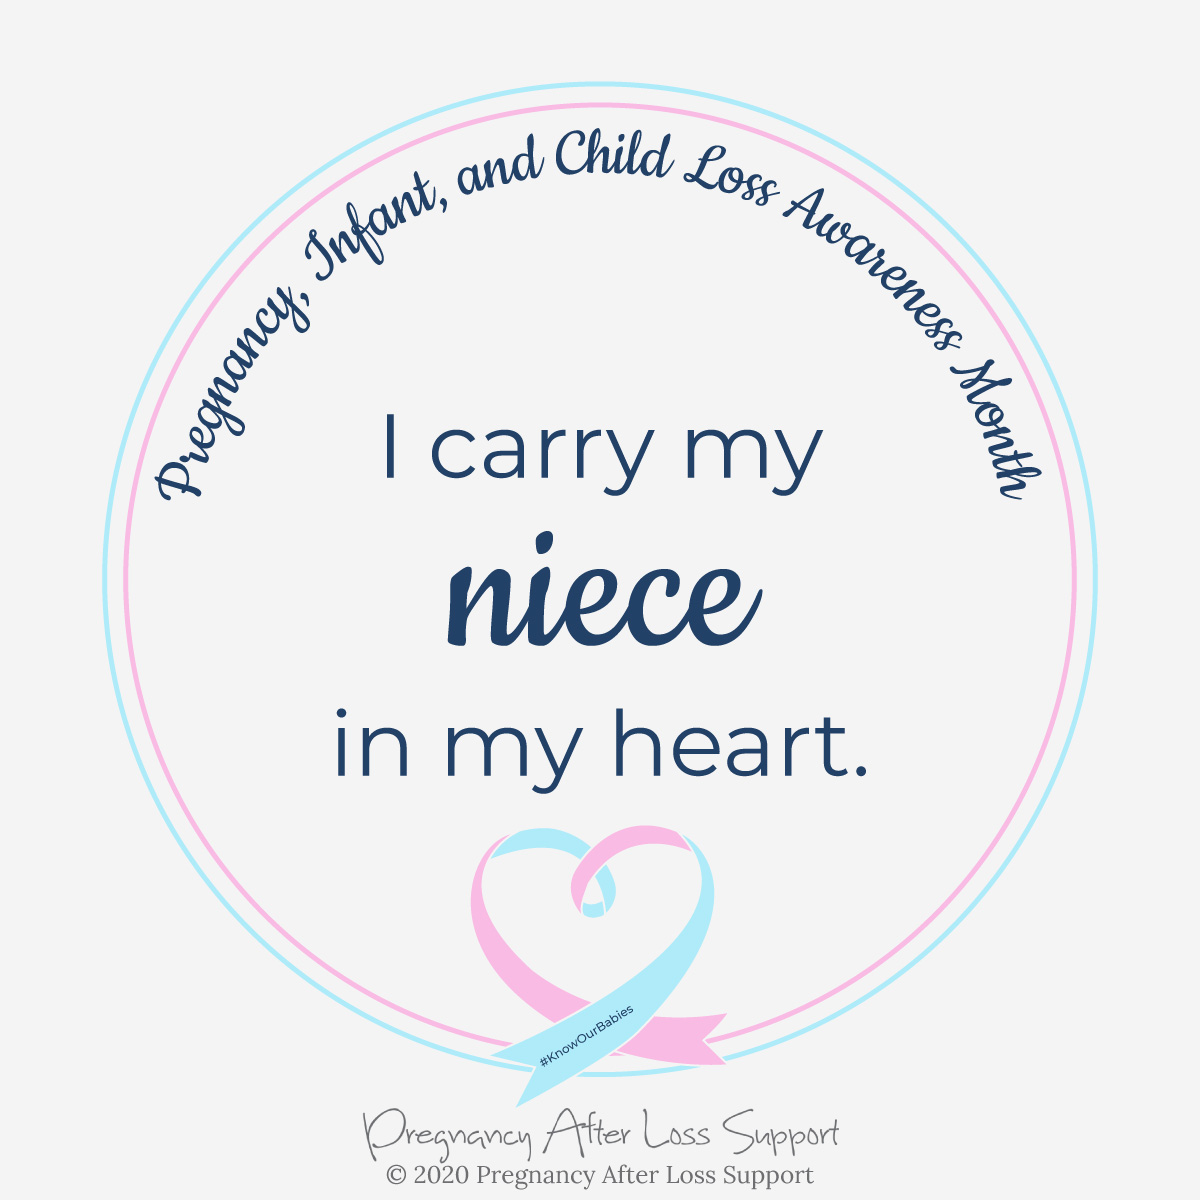 I carry my niece in my heart - Pregnancy, Infant, and Child Loss Awareness Month